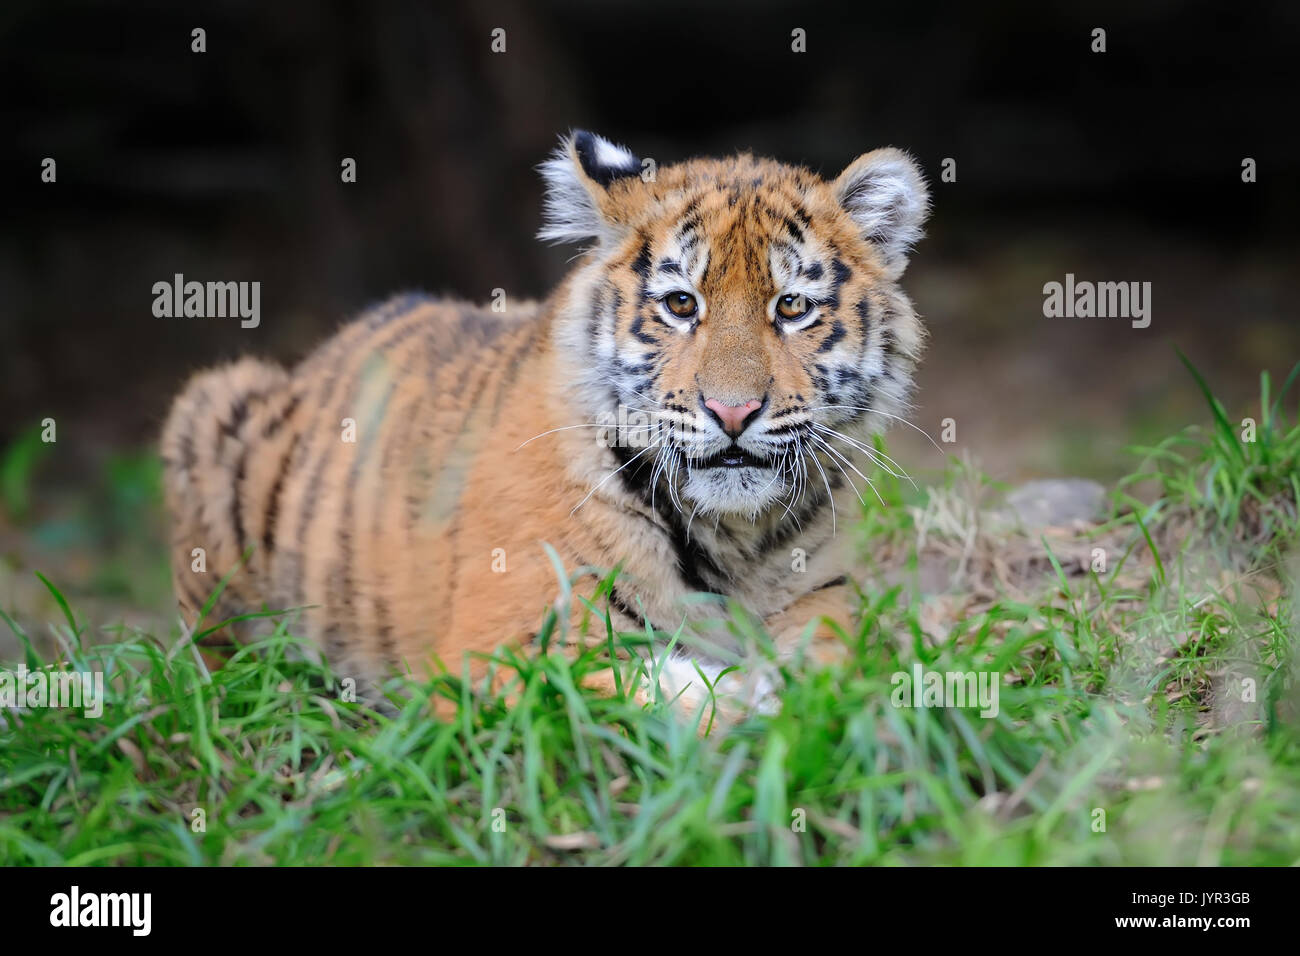 White Tiger Cub Wildlife Stock Photos & White Tiger Cub ... Cute Siberian Tiger Cubs